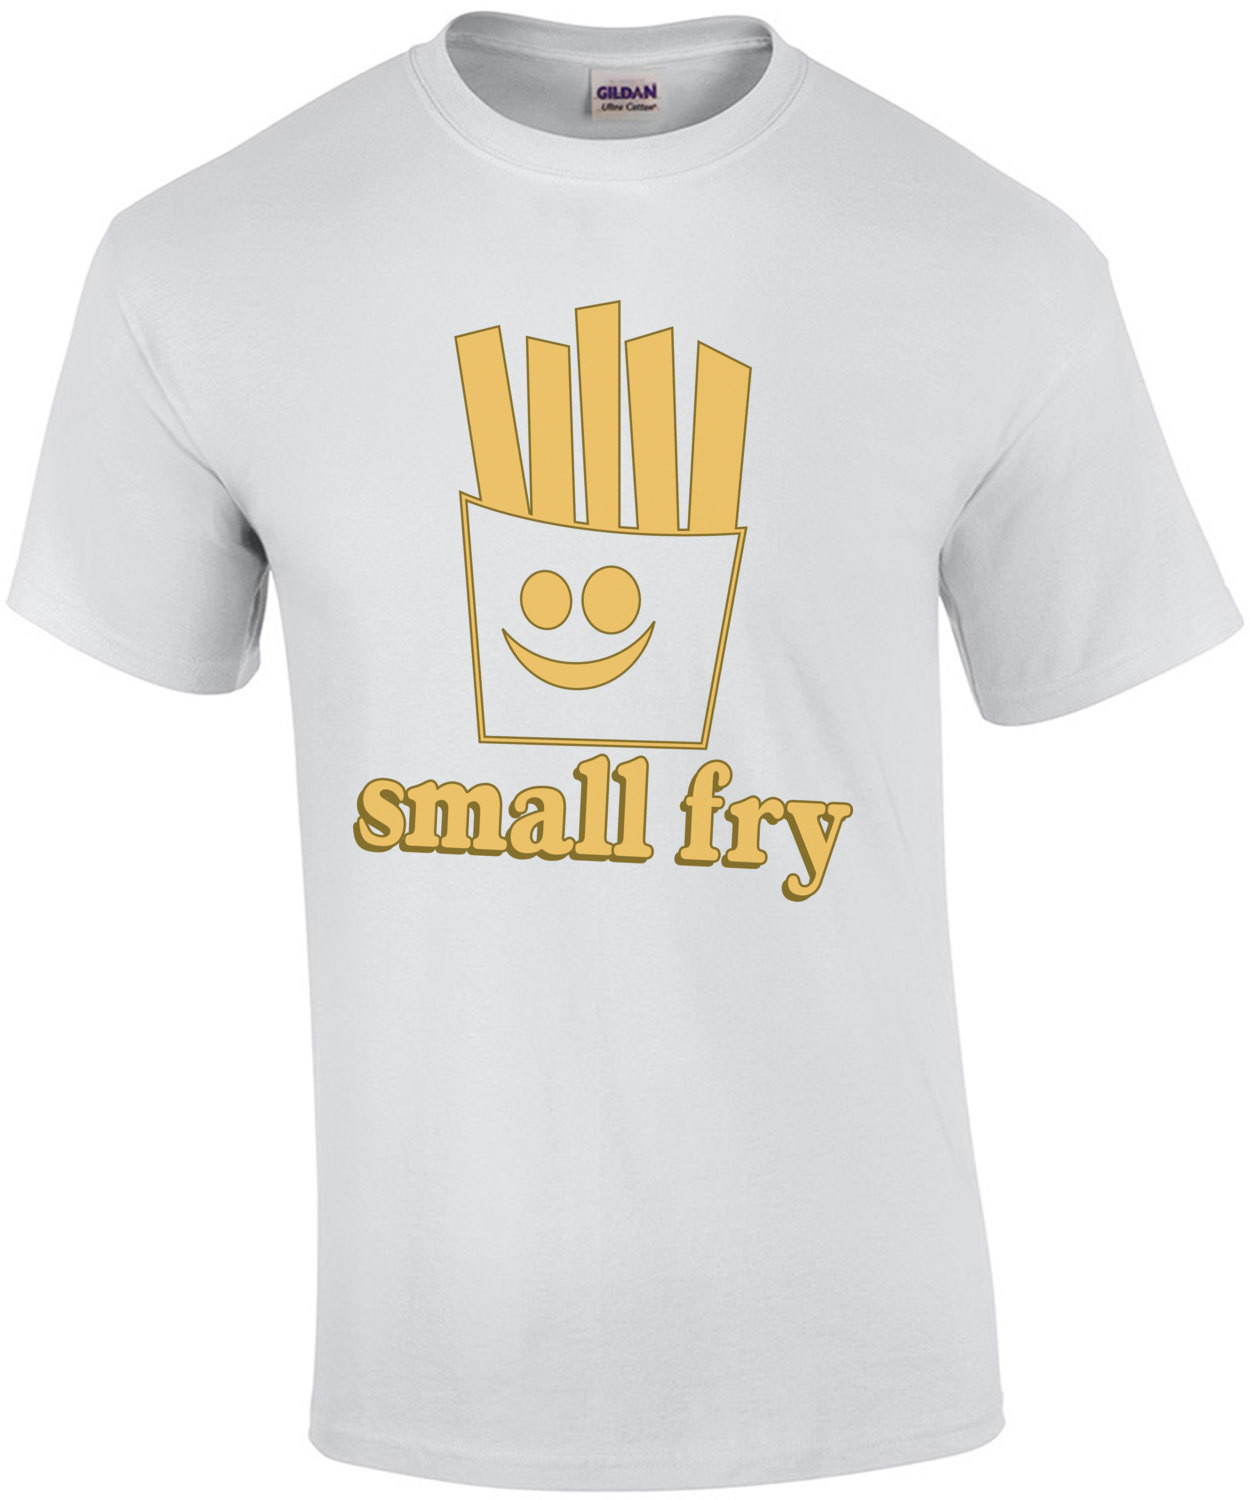 Small Fry - Kid's Shirt